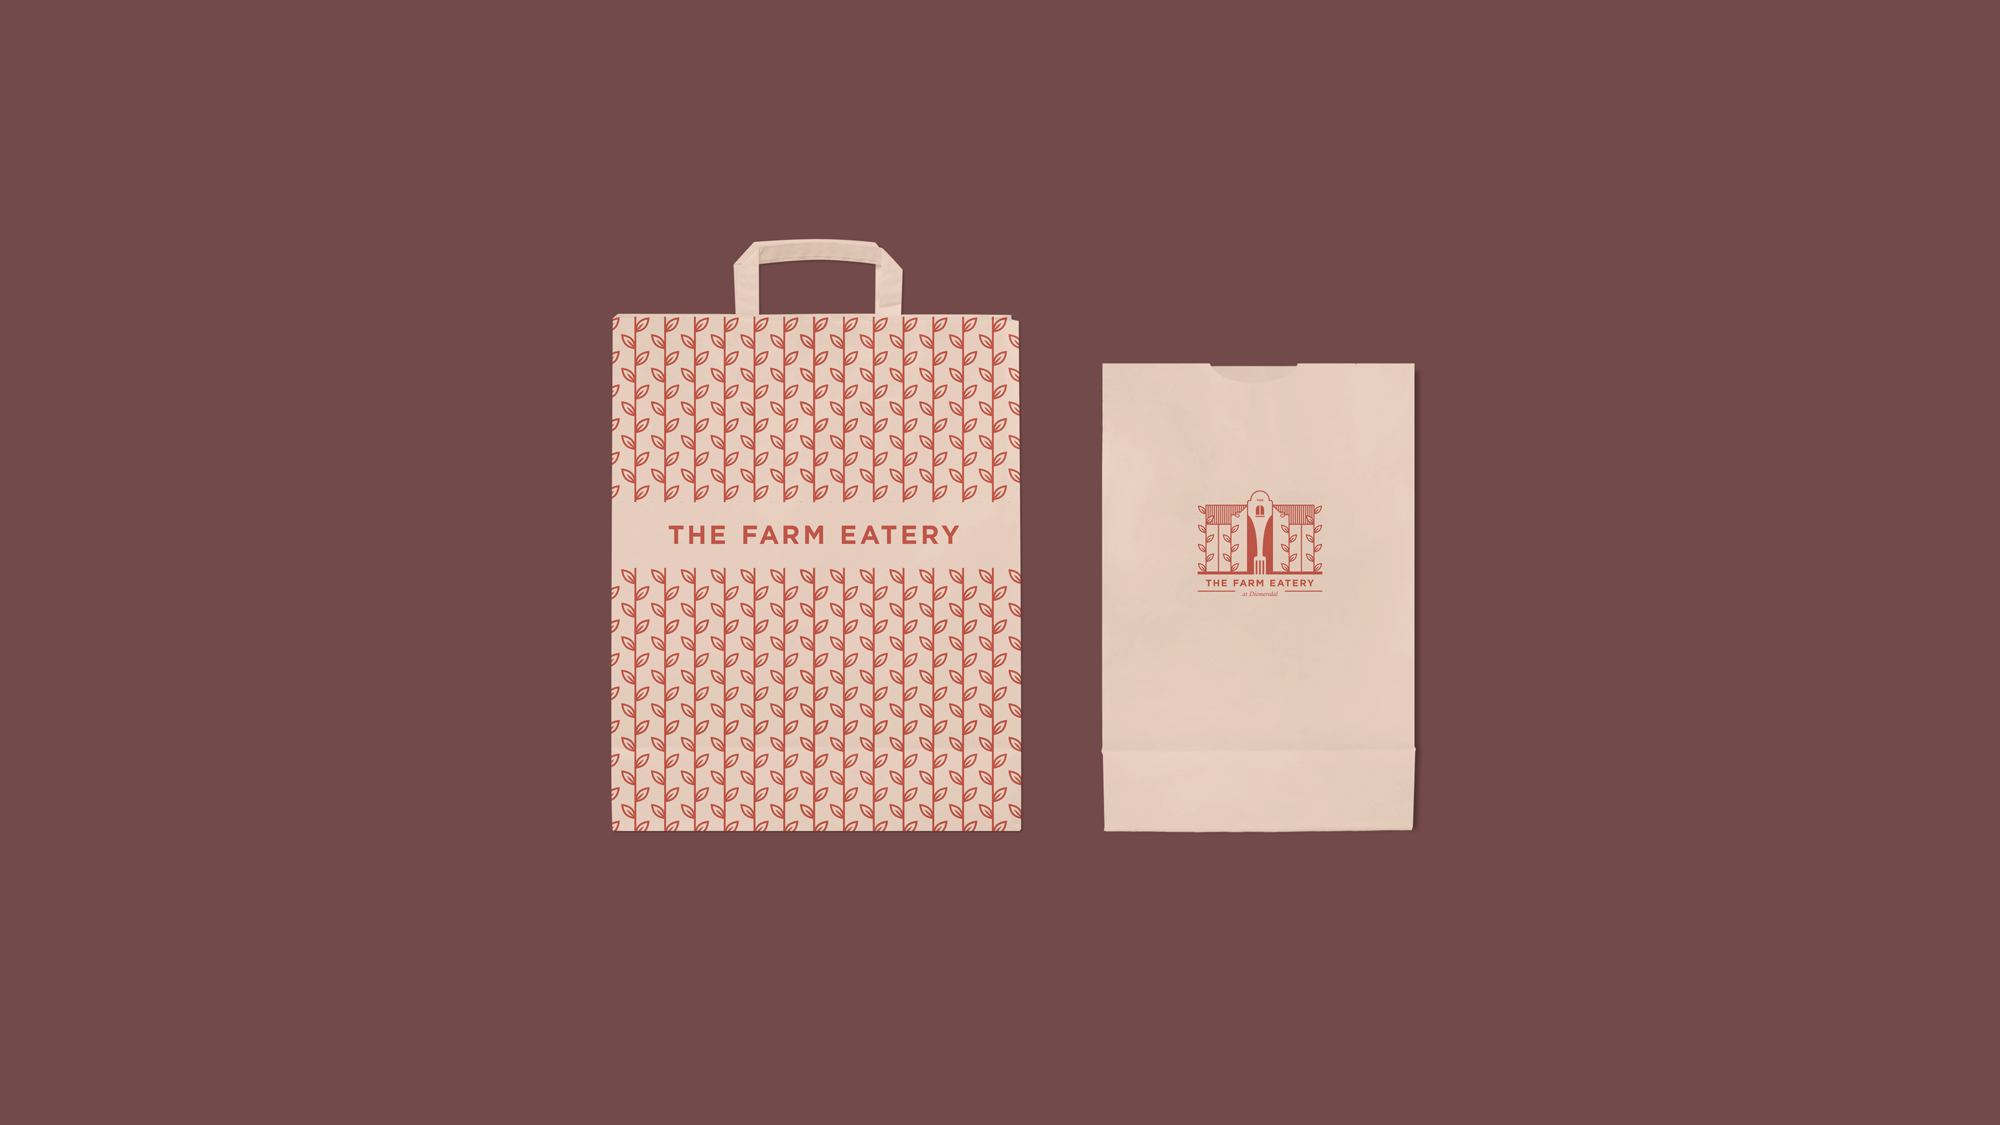 The Farm Eatery Takeaway Bags